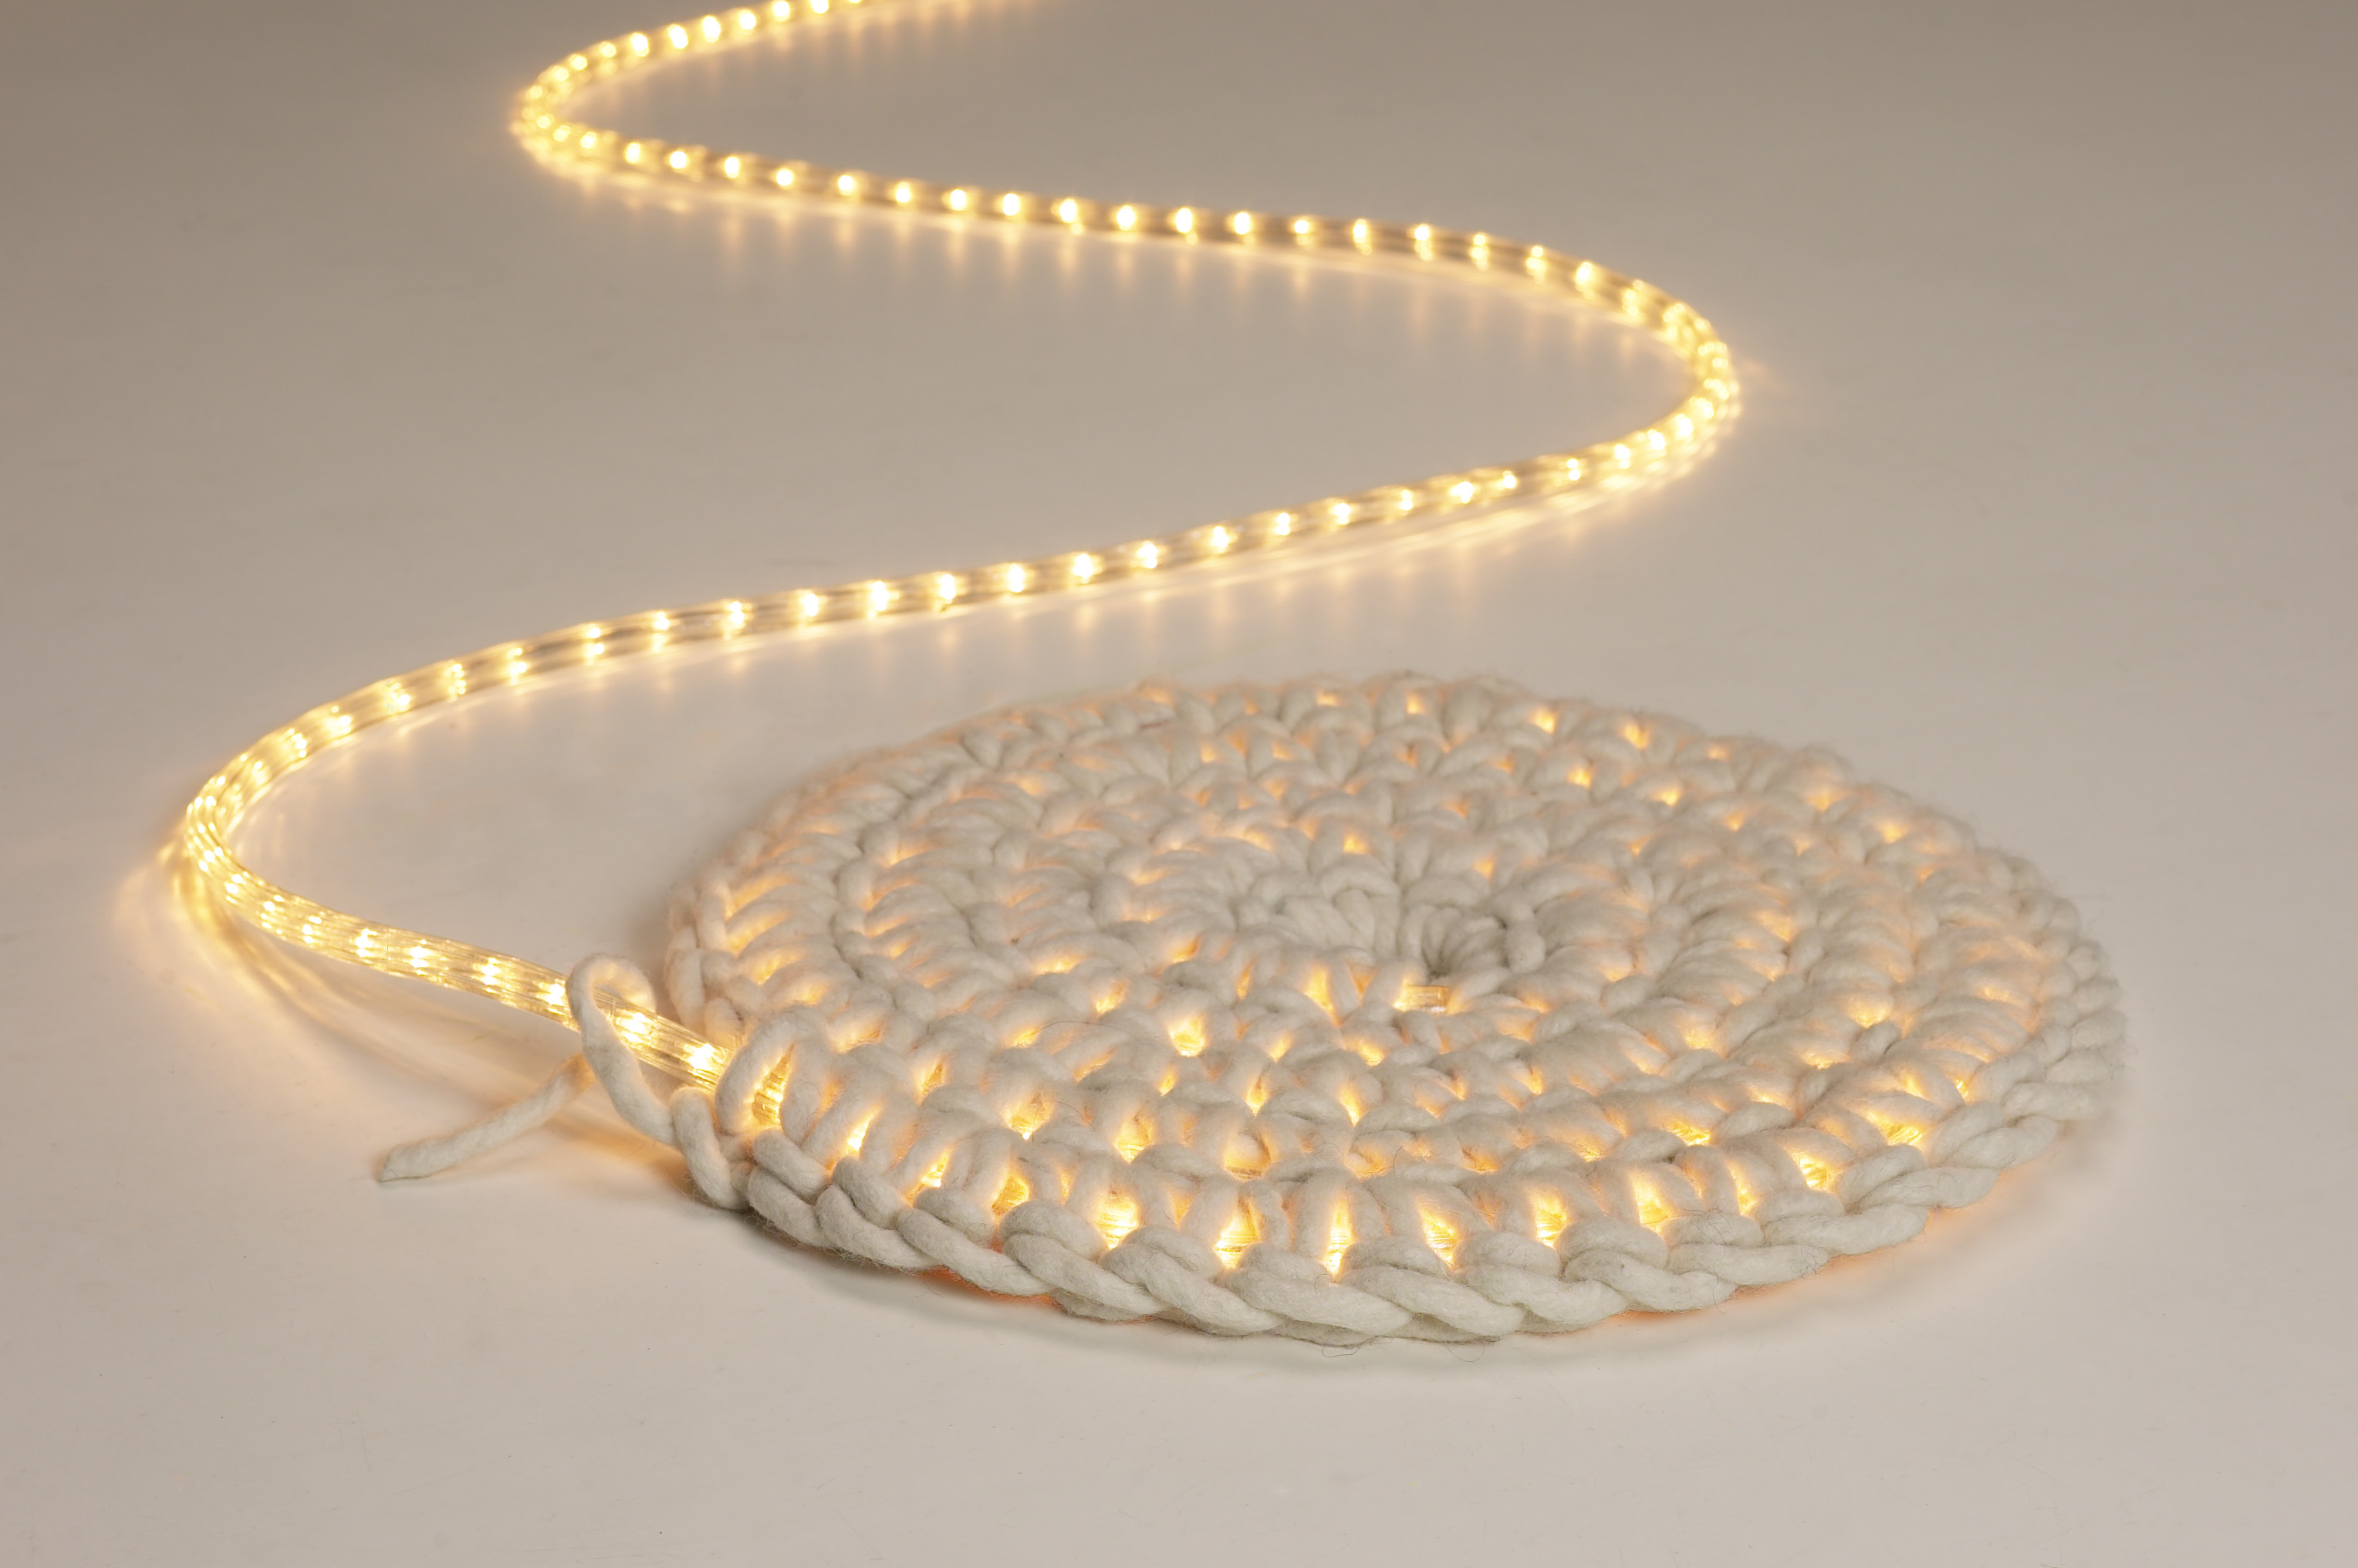 Crochet a lighted rug or wall hanging the spinners husband crochet a lighted rug or wall hanging aloadofball Choice Image